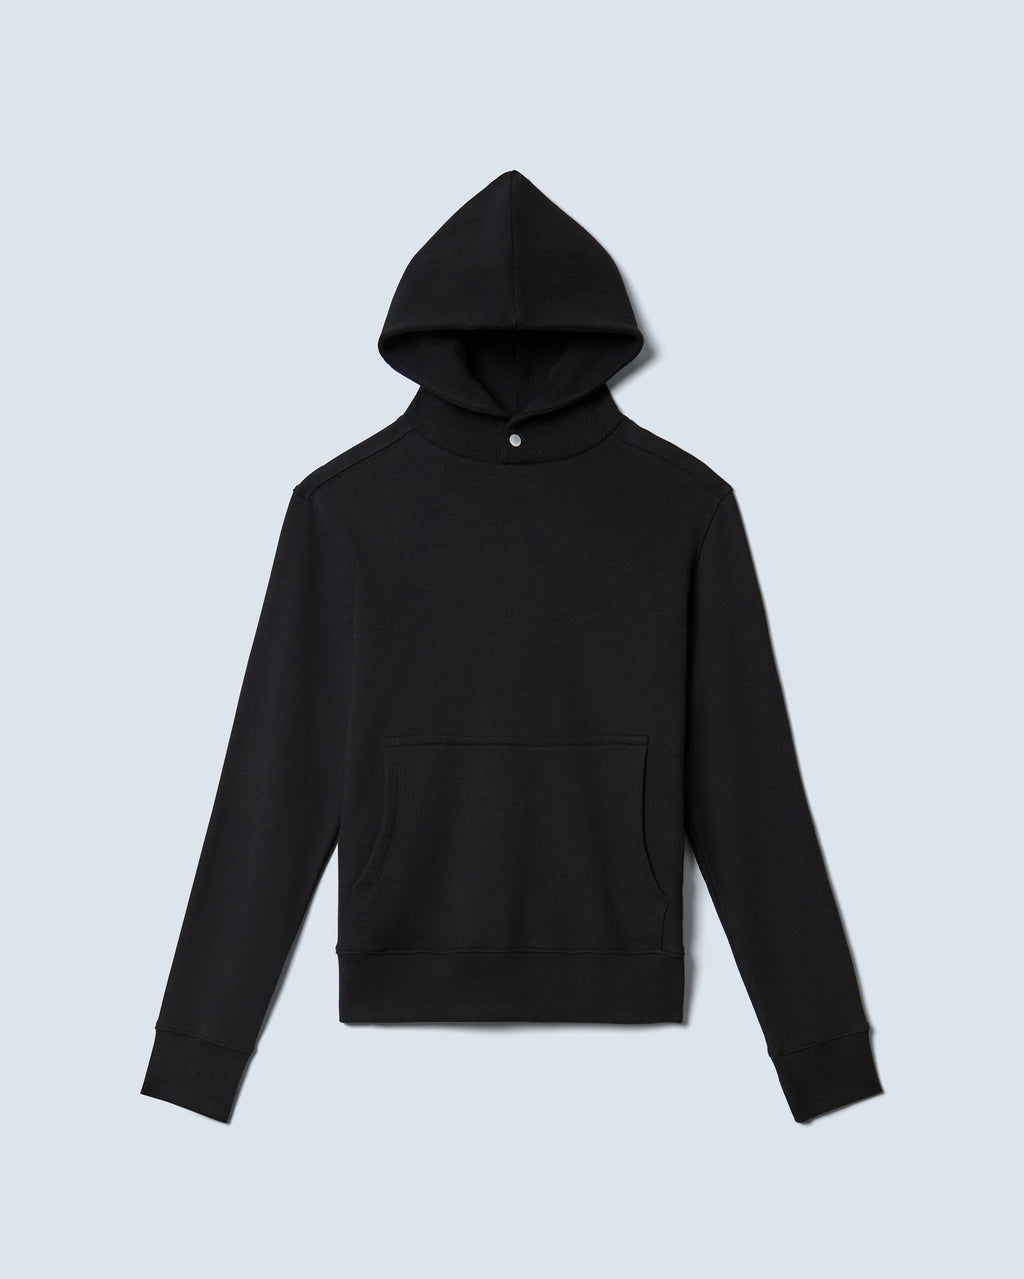 The Cale Hoodie in Black